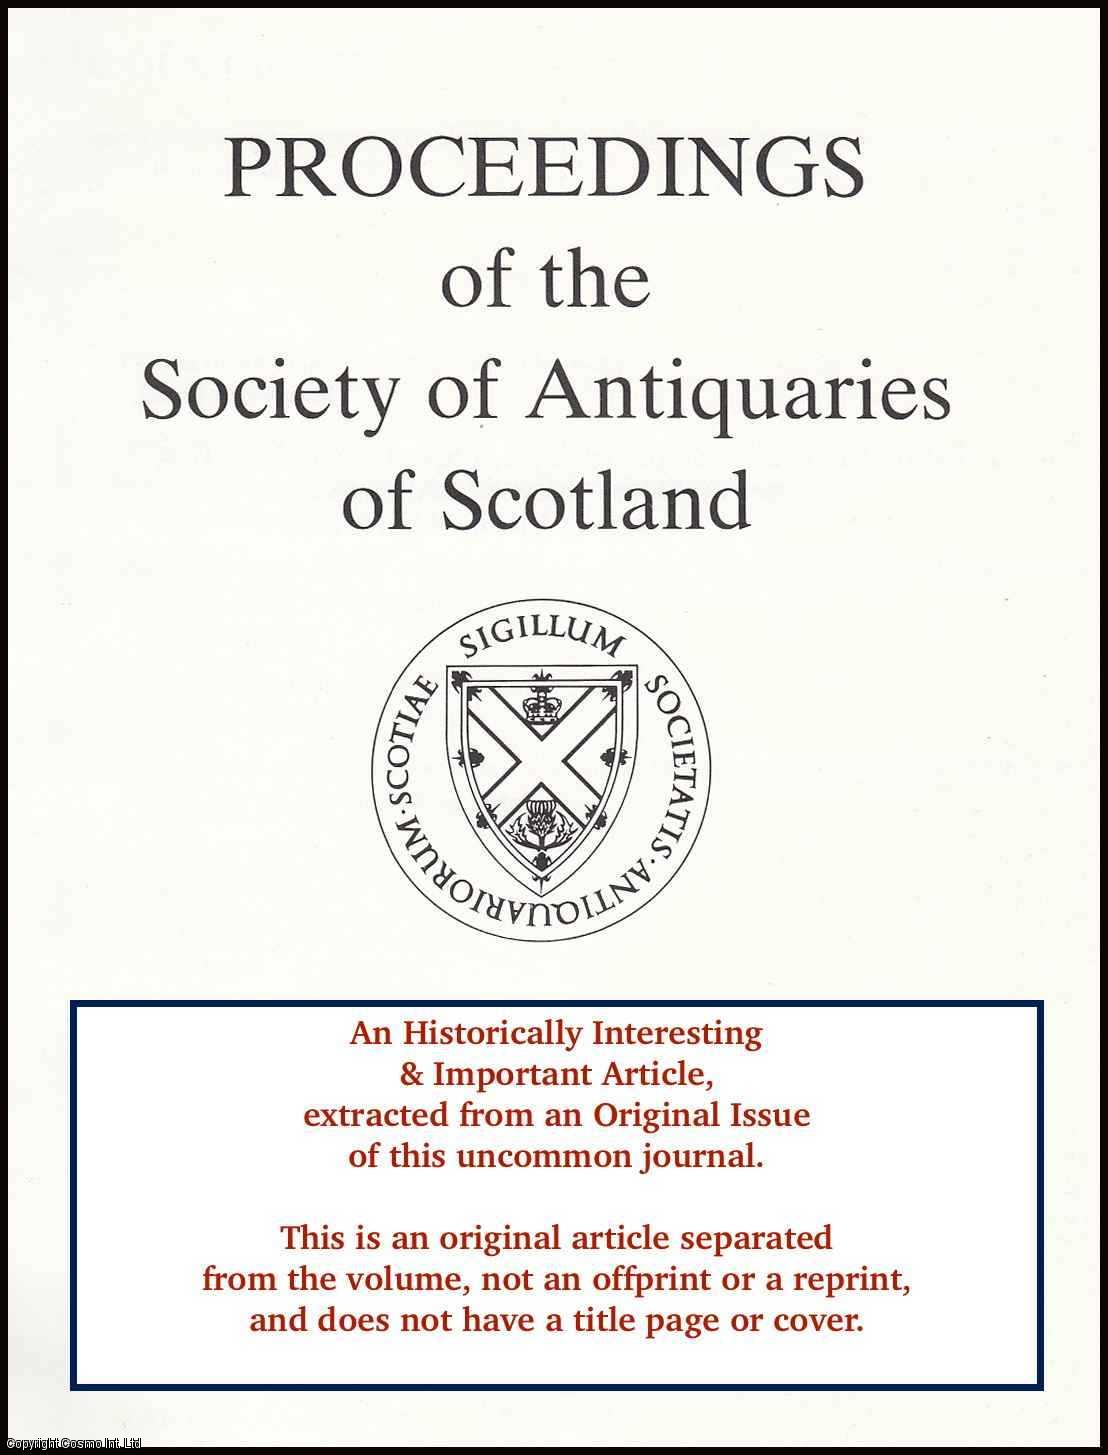 SEARIGHT, SUSAN - Lussa Bay, Isle of Jura, Argyll: A Note on Additional Tools. An original article from the Proceedings of the Society of Antiquaries of Scotland, 1993.